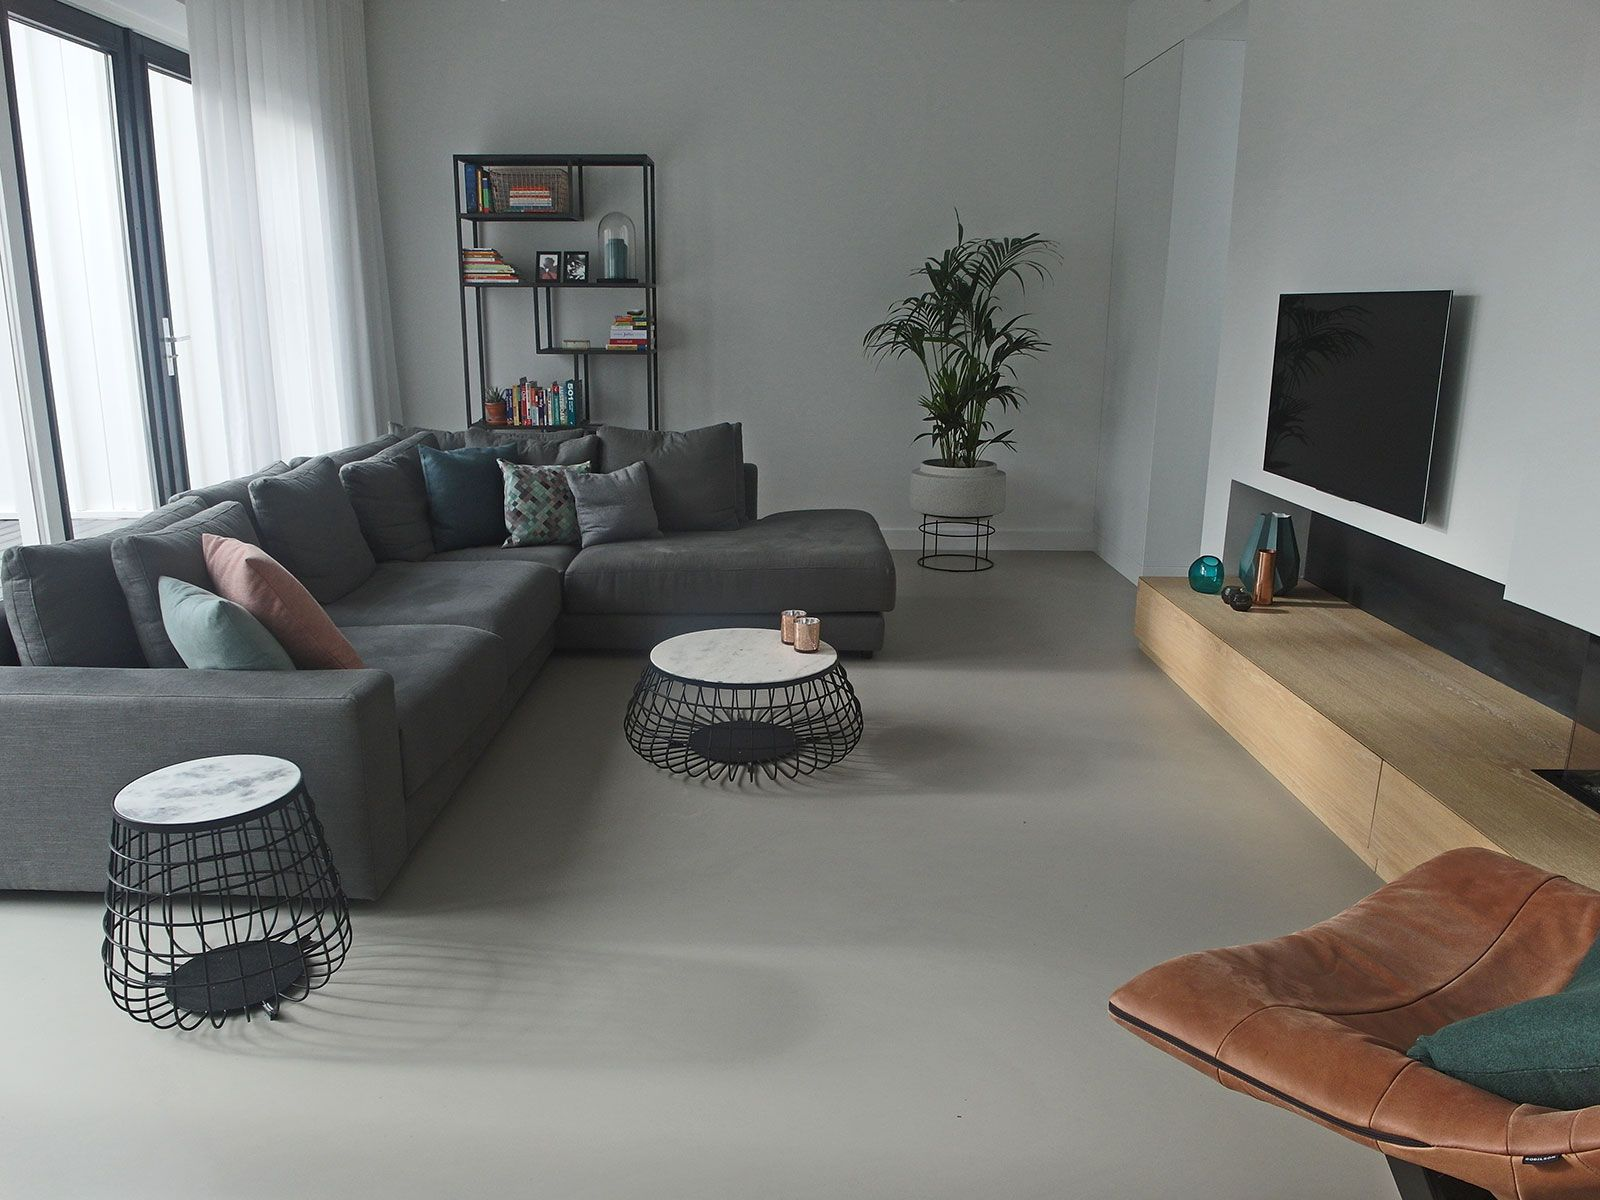 Gietvloer woonkamer Amsterdam | Living rooms, Interiors and Epoxy